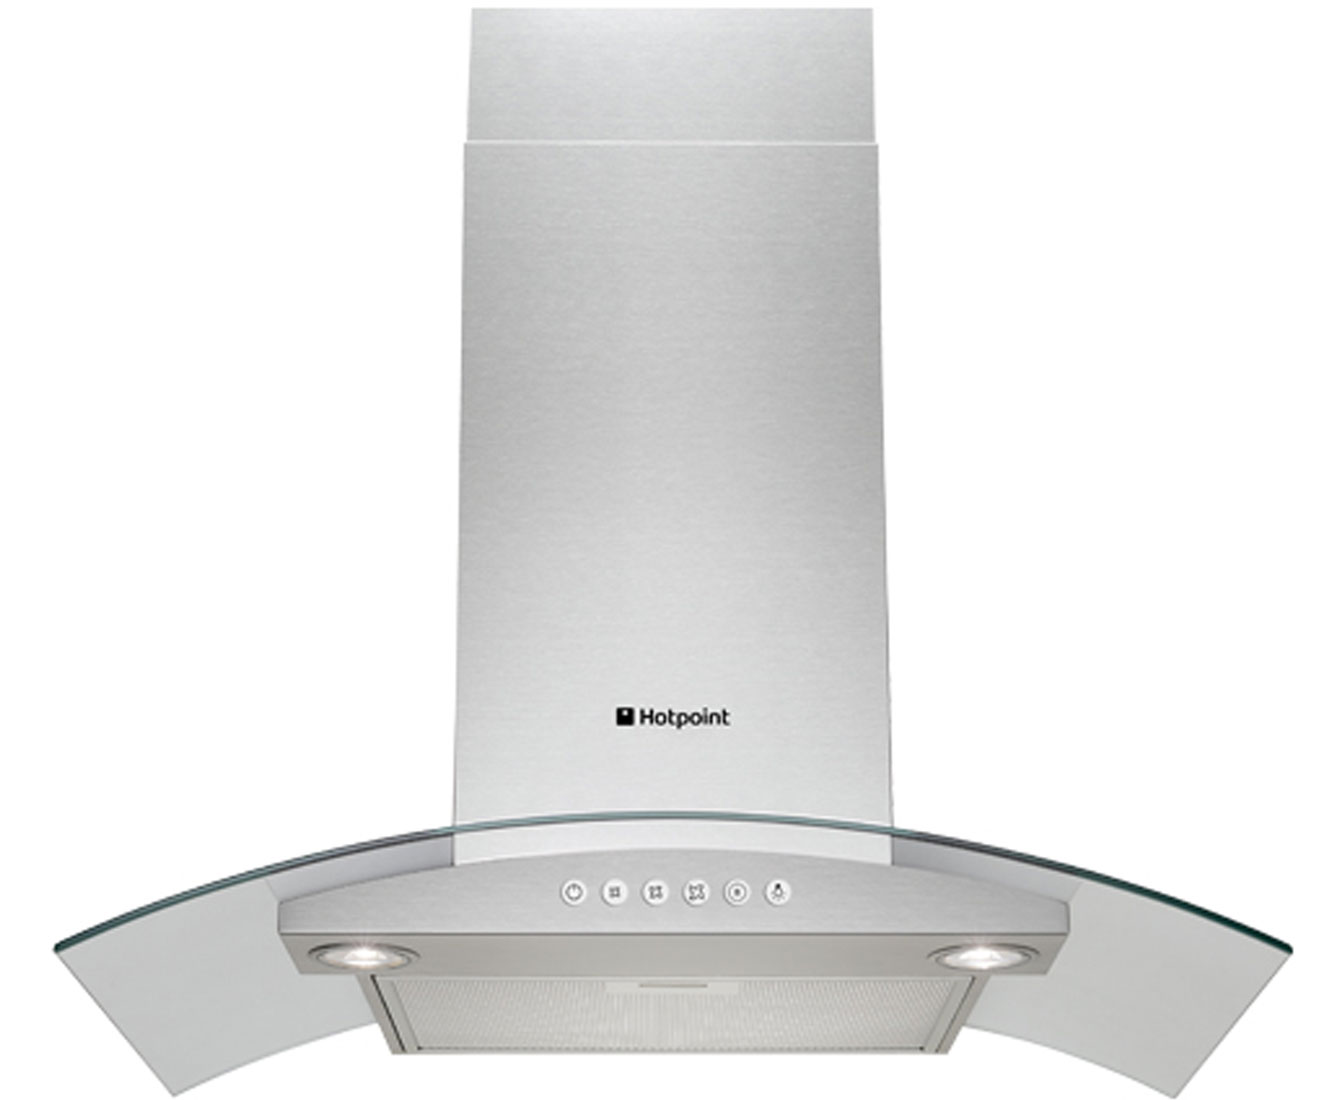 Hotpoint HDA65SAB 60 cm Chimney Cooker Hood - Stainless Steel